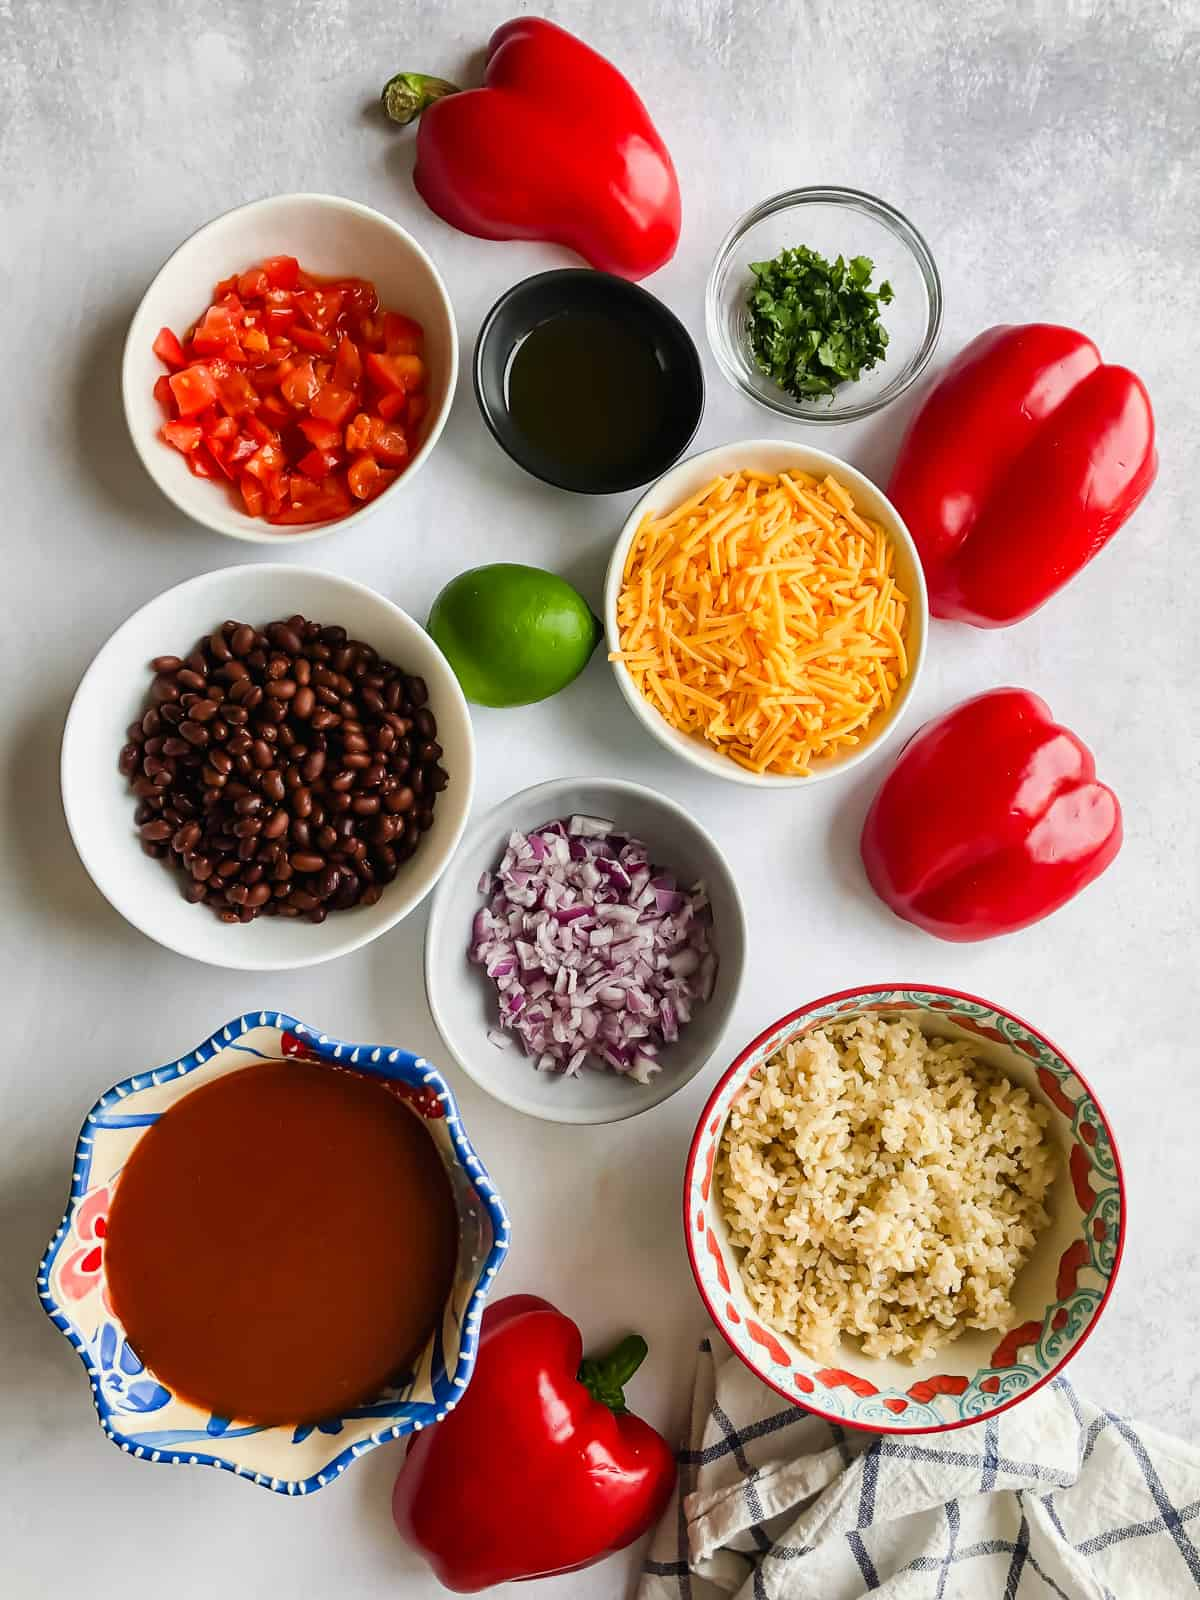 Ingredients for Enchilada Stuffed Peppers in bowls